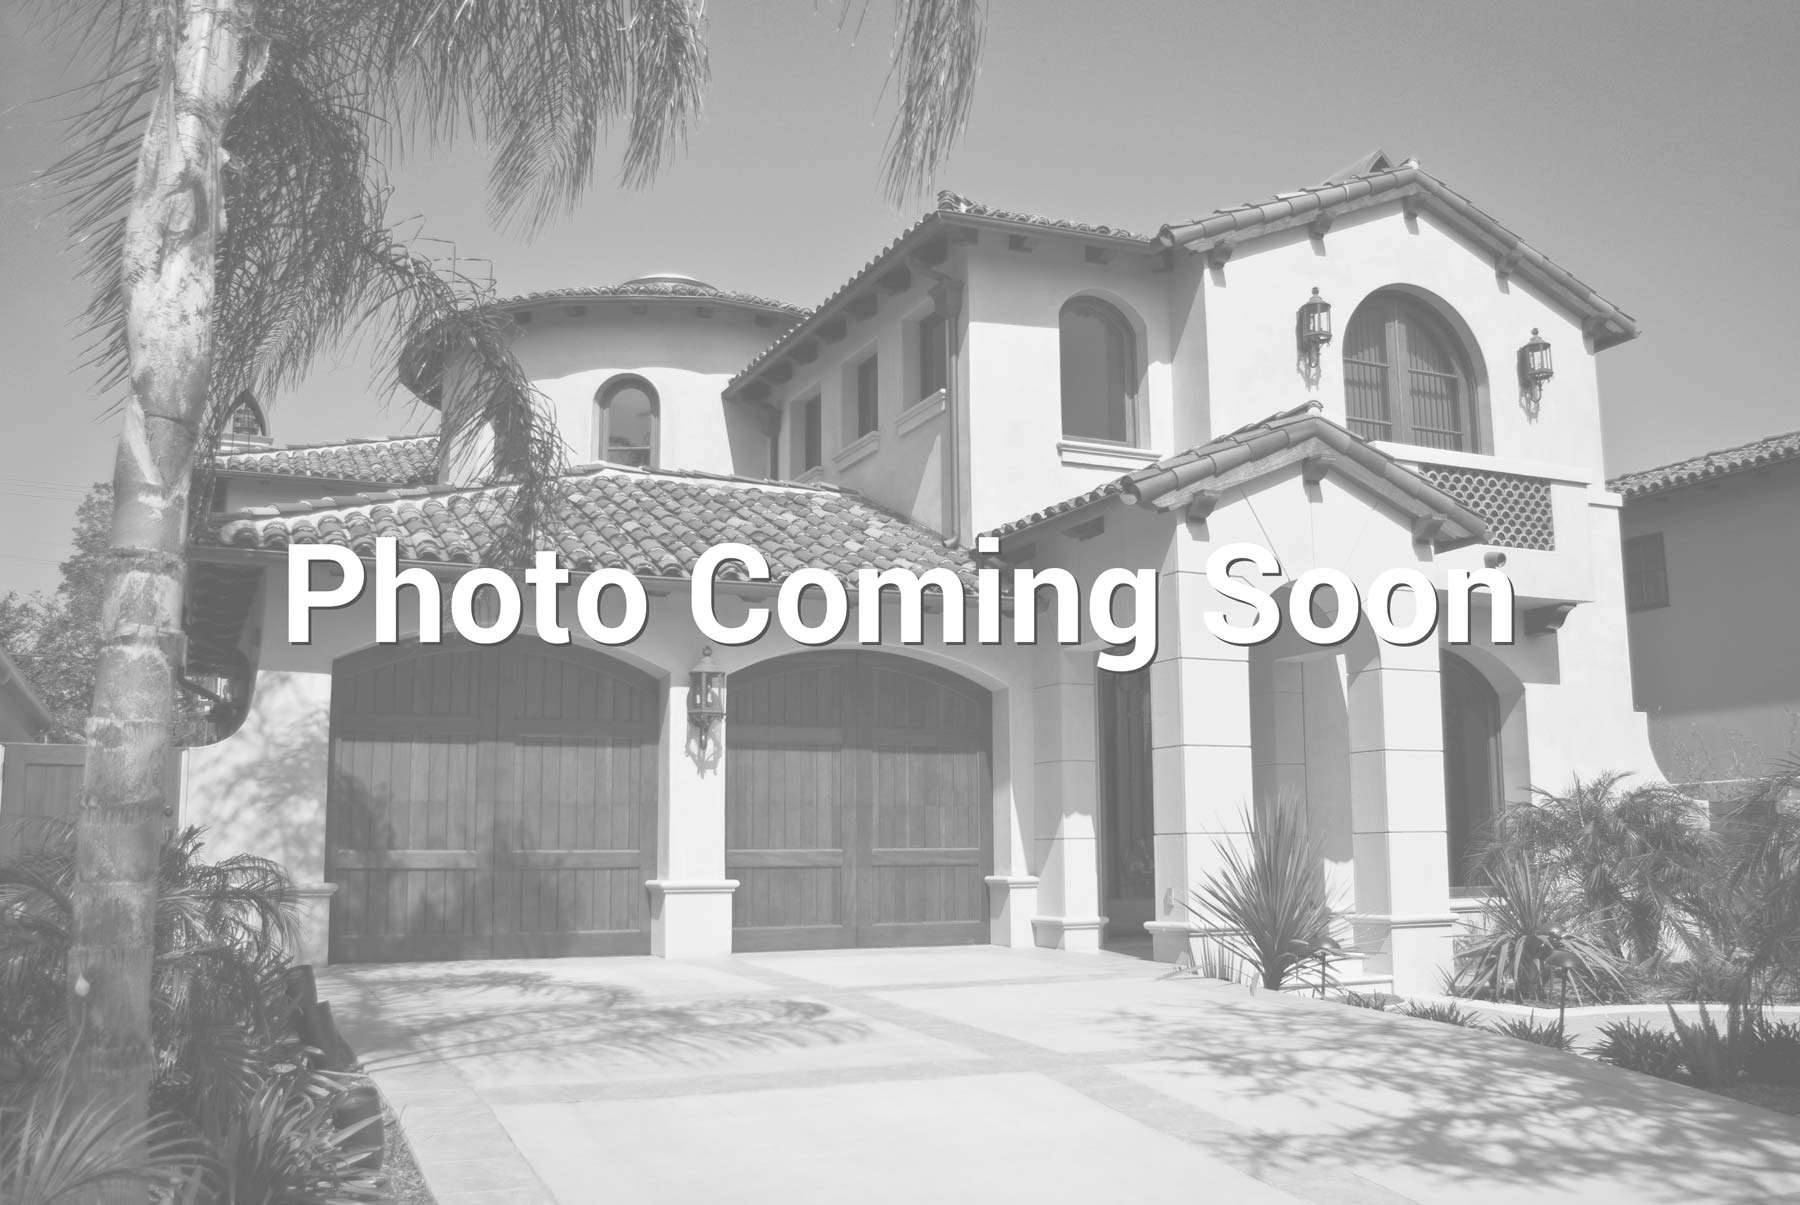 $2,600,000 - 4Br/4Ba - Home for Sale in Carefree Grandview Estates, Carefree